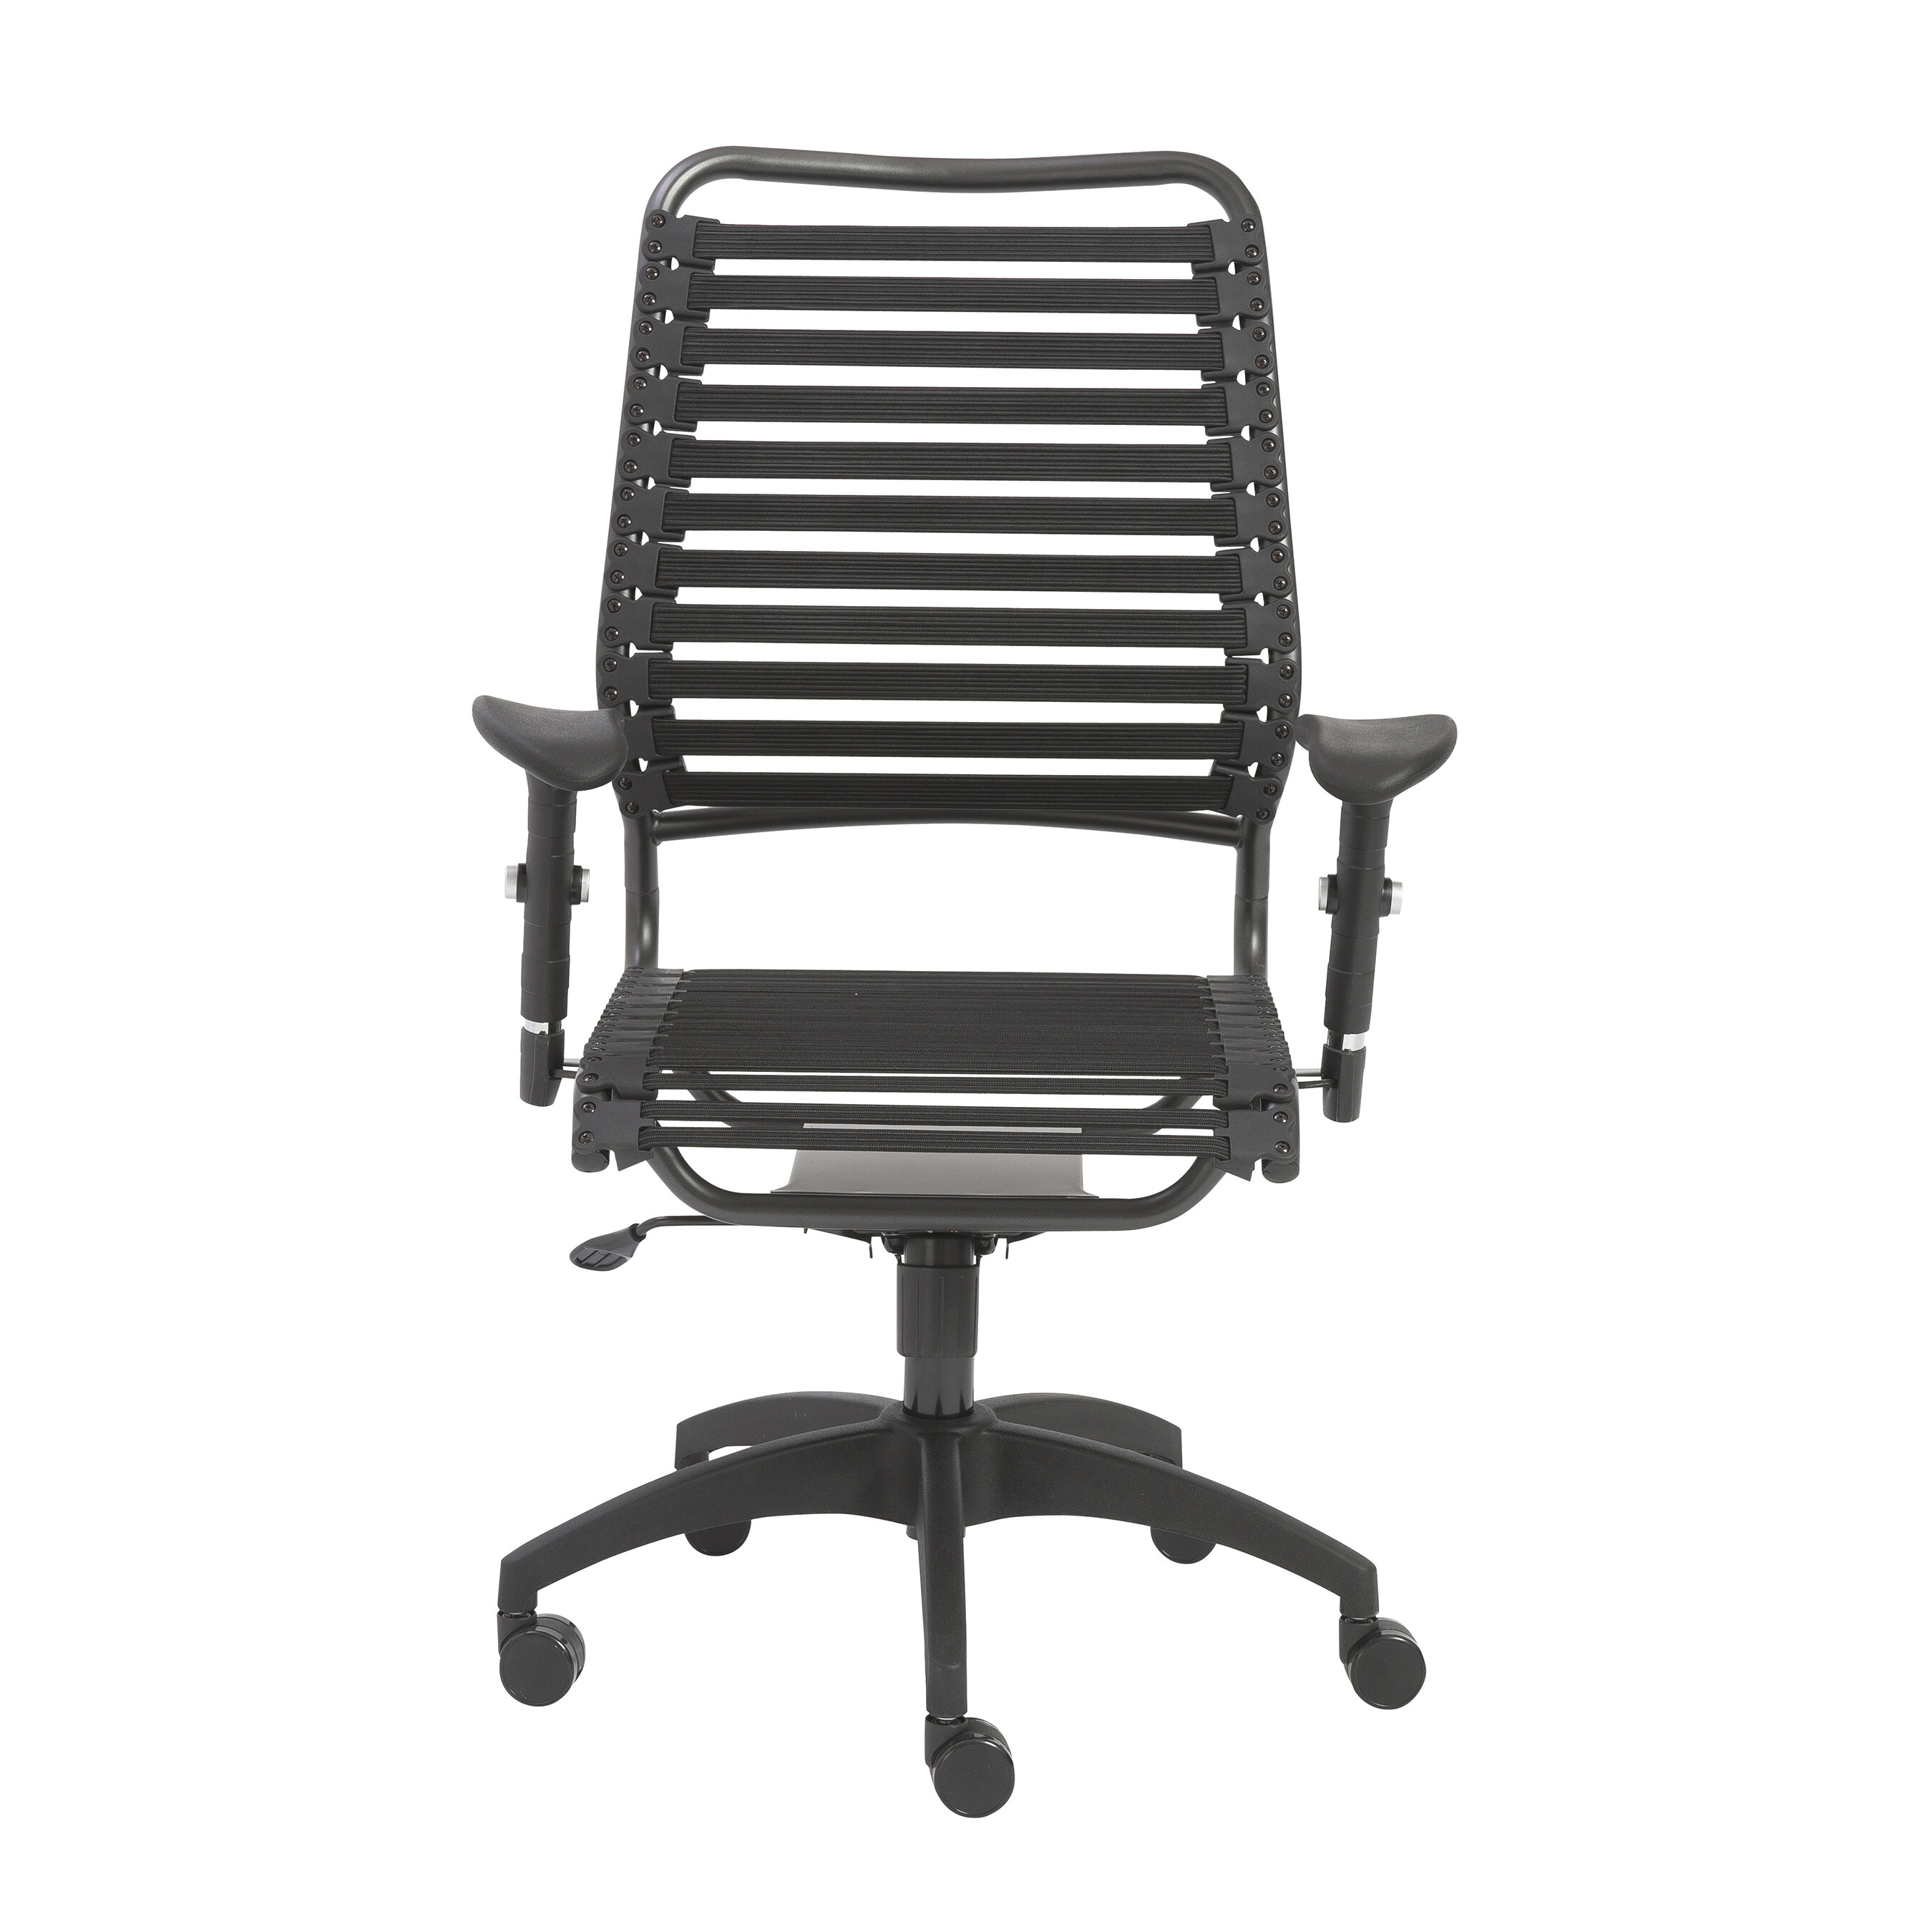 Genial Orren Ellis Barbee Adjustable Bungee Desk Chair | Wayfair